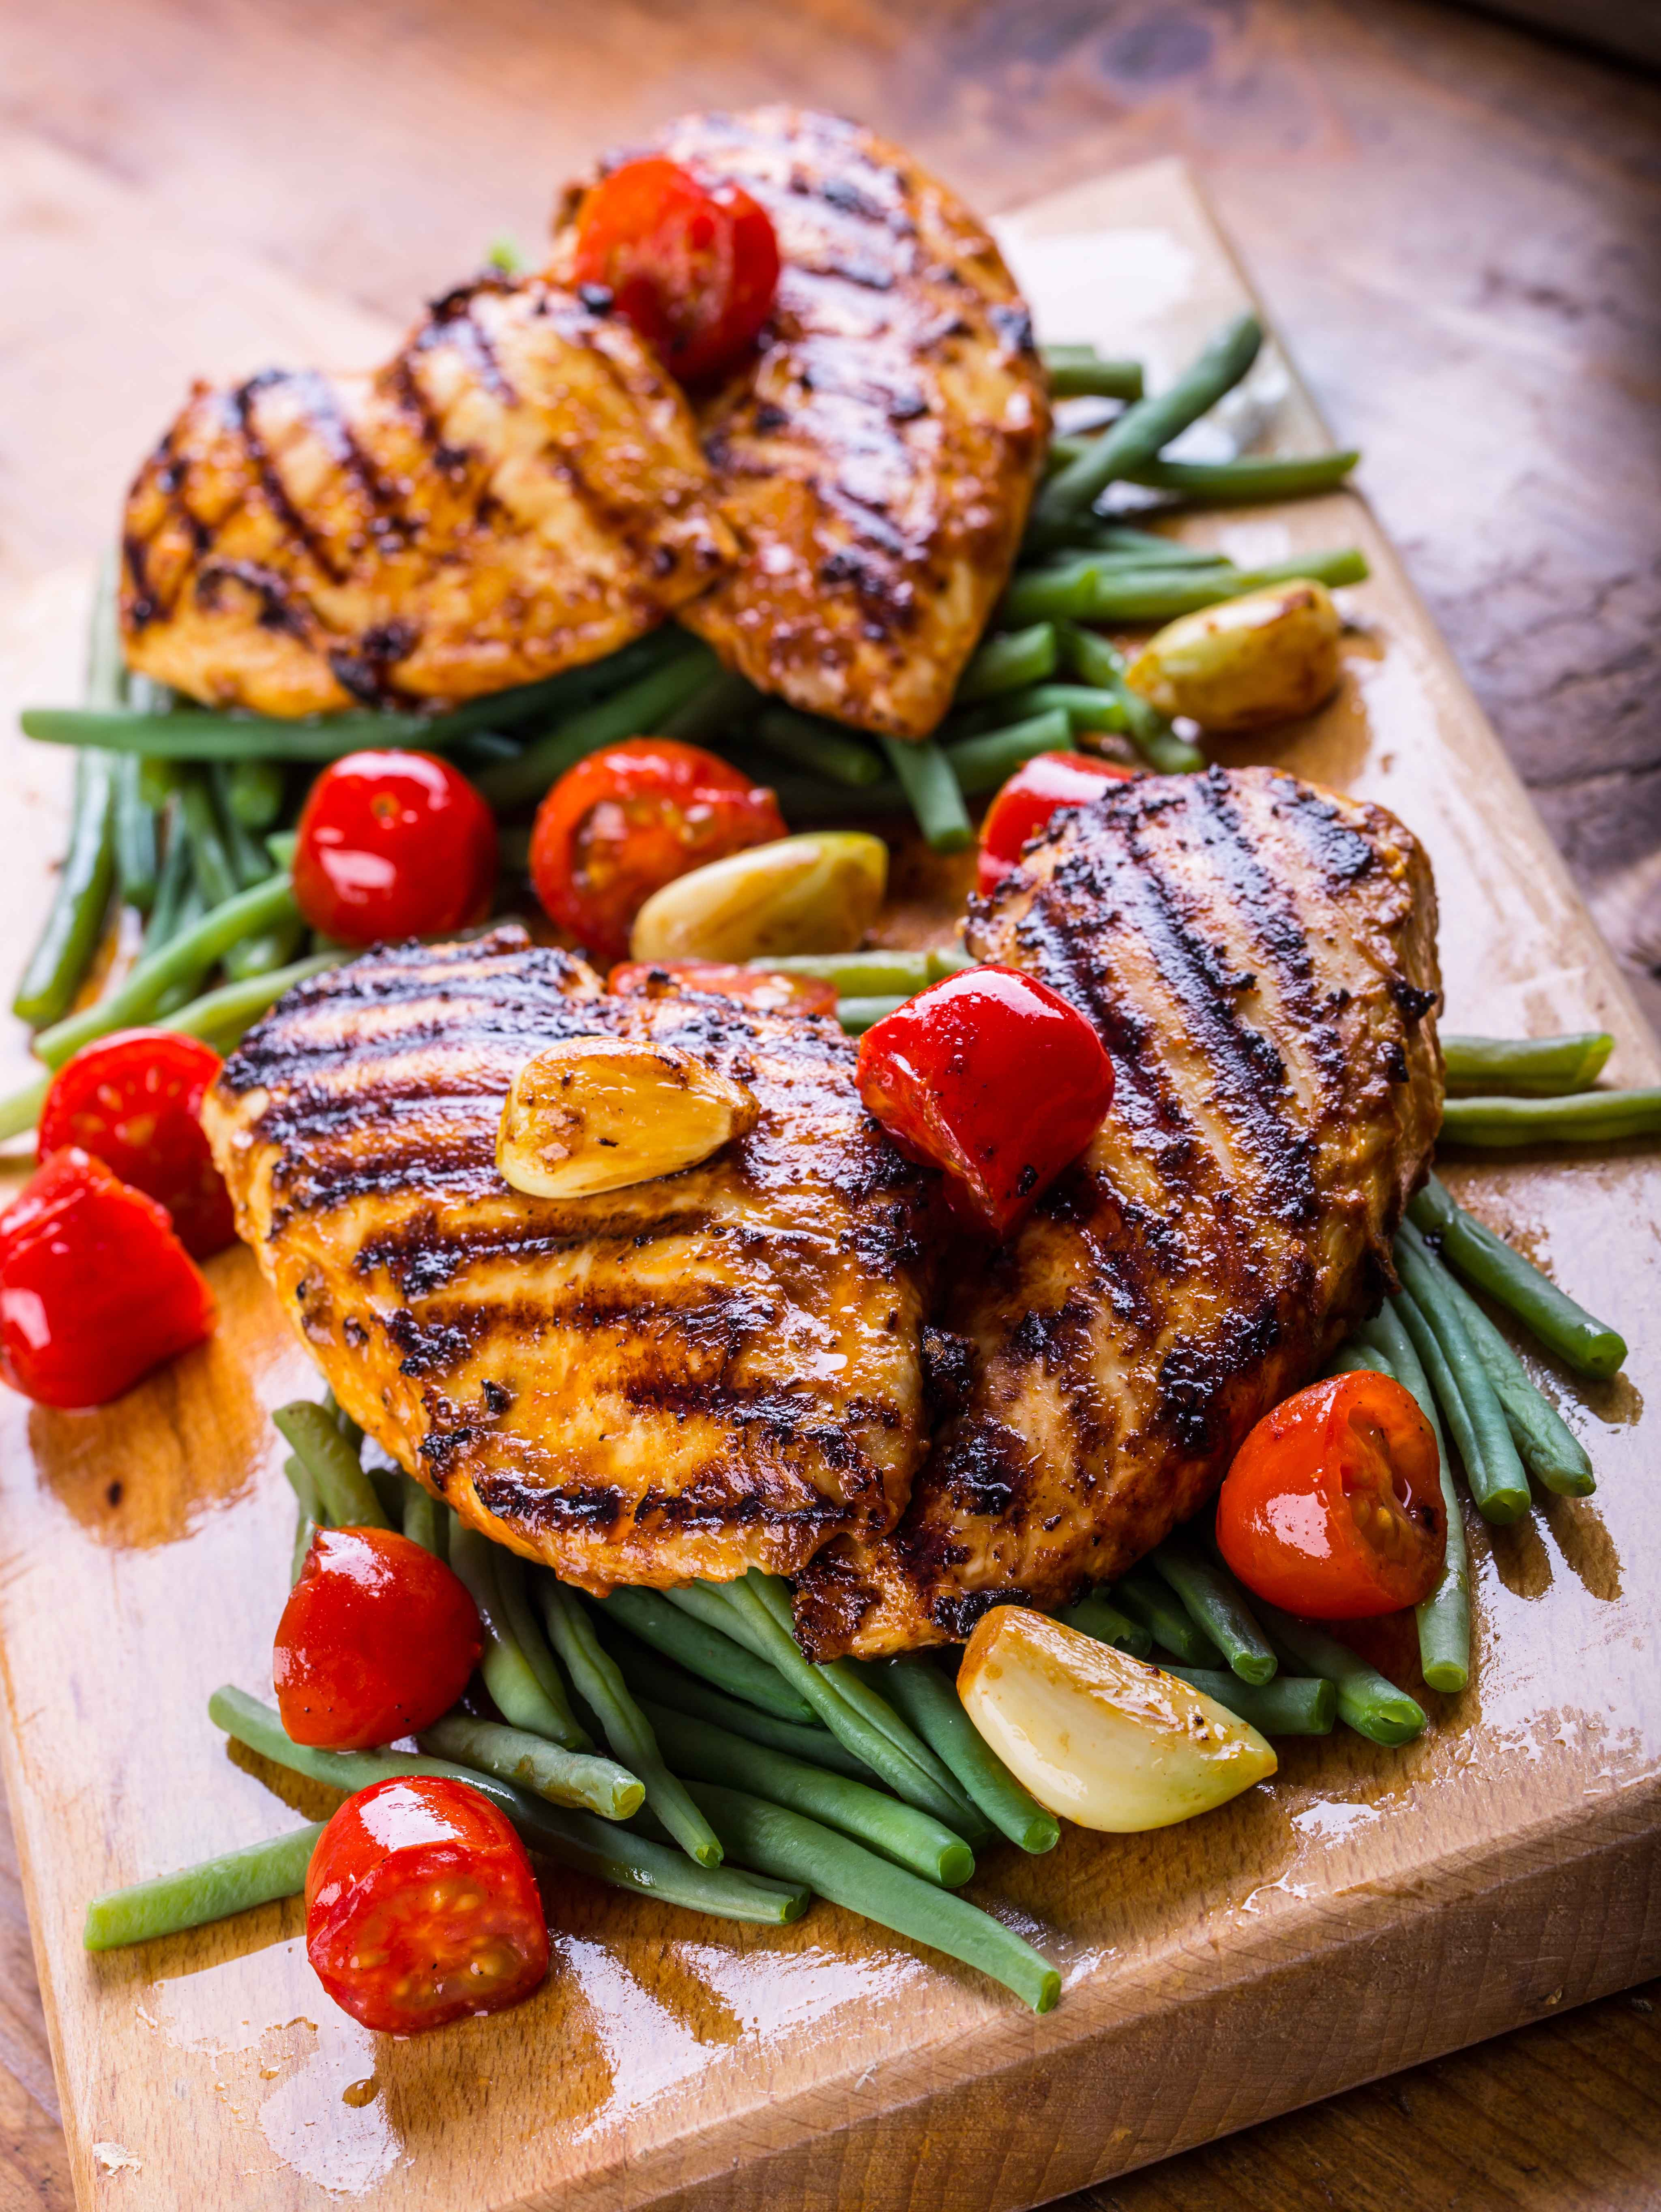 highcompress-Grilled chicken breast in d